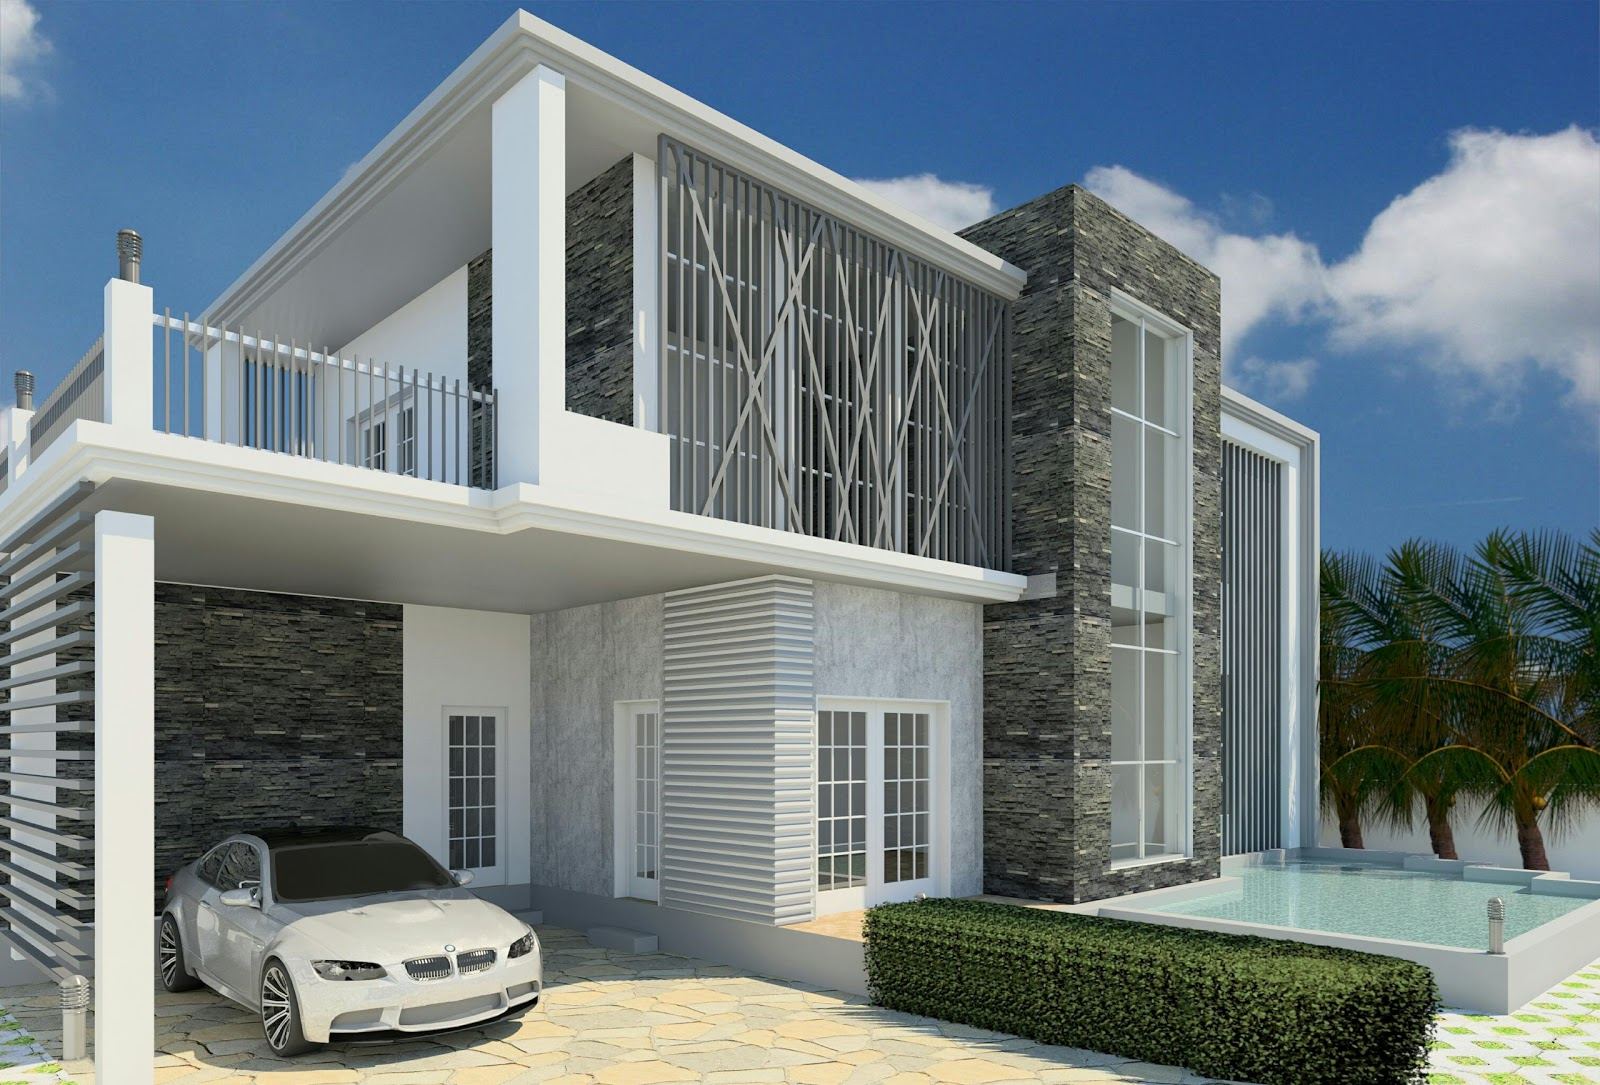 Revit architecture modern house design 8 cad needs for Modern architecture design house